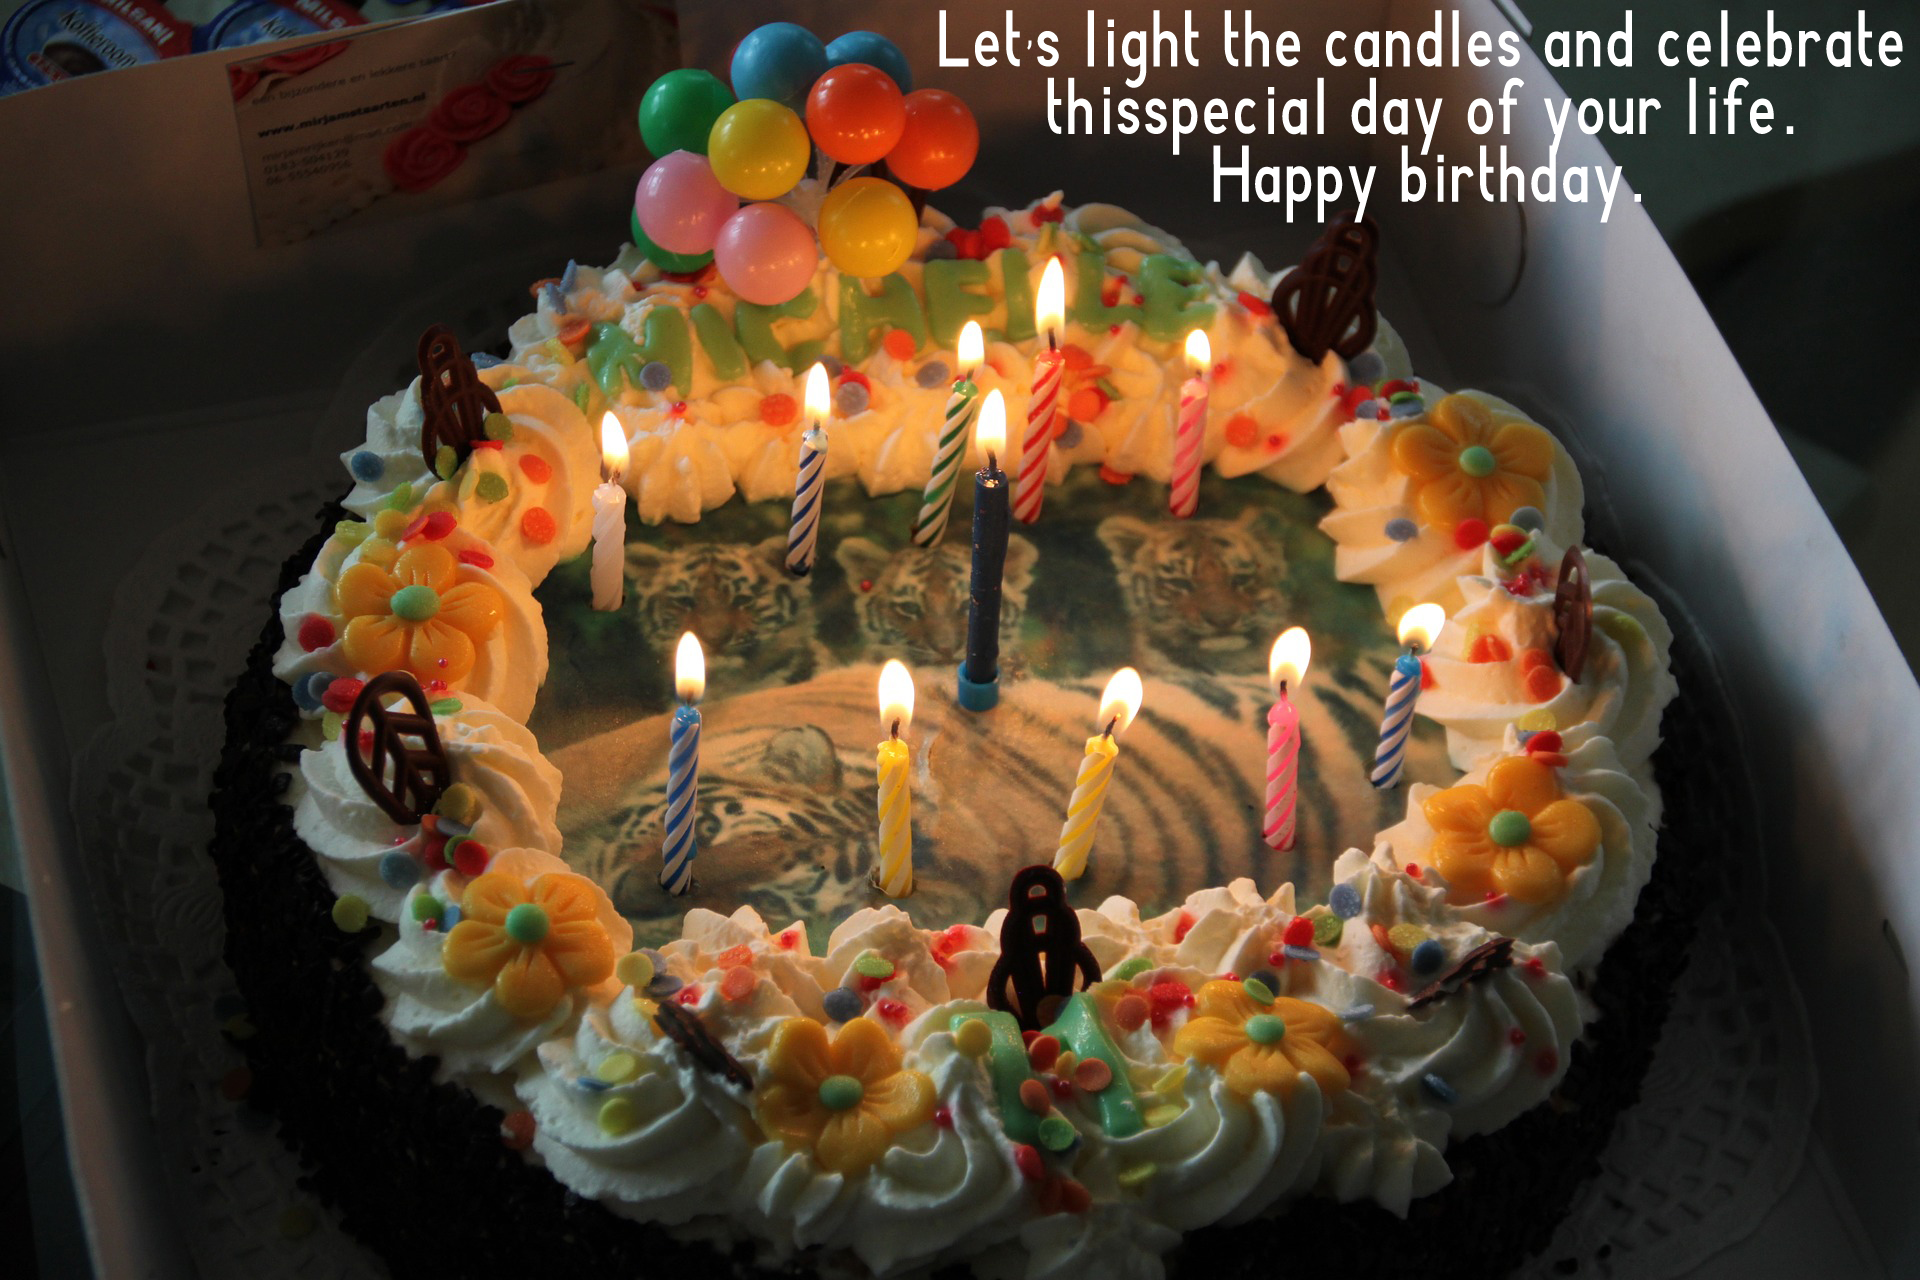 birthday wishes and candle